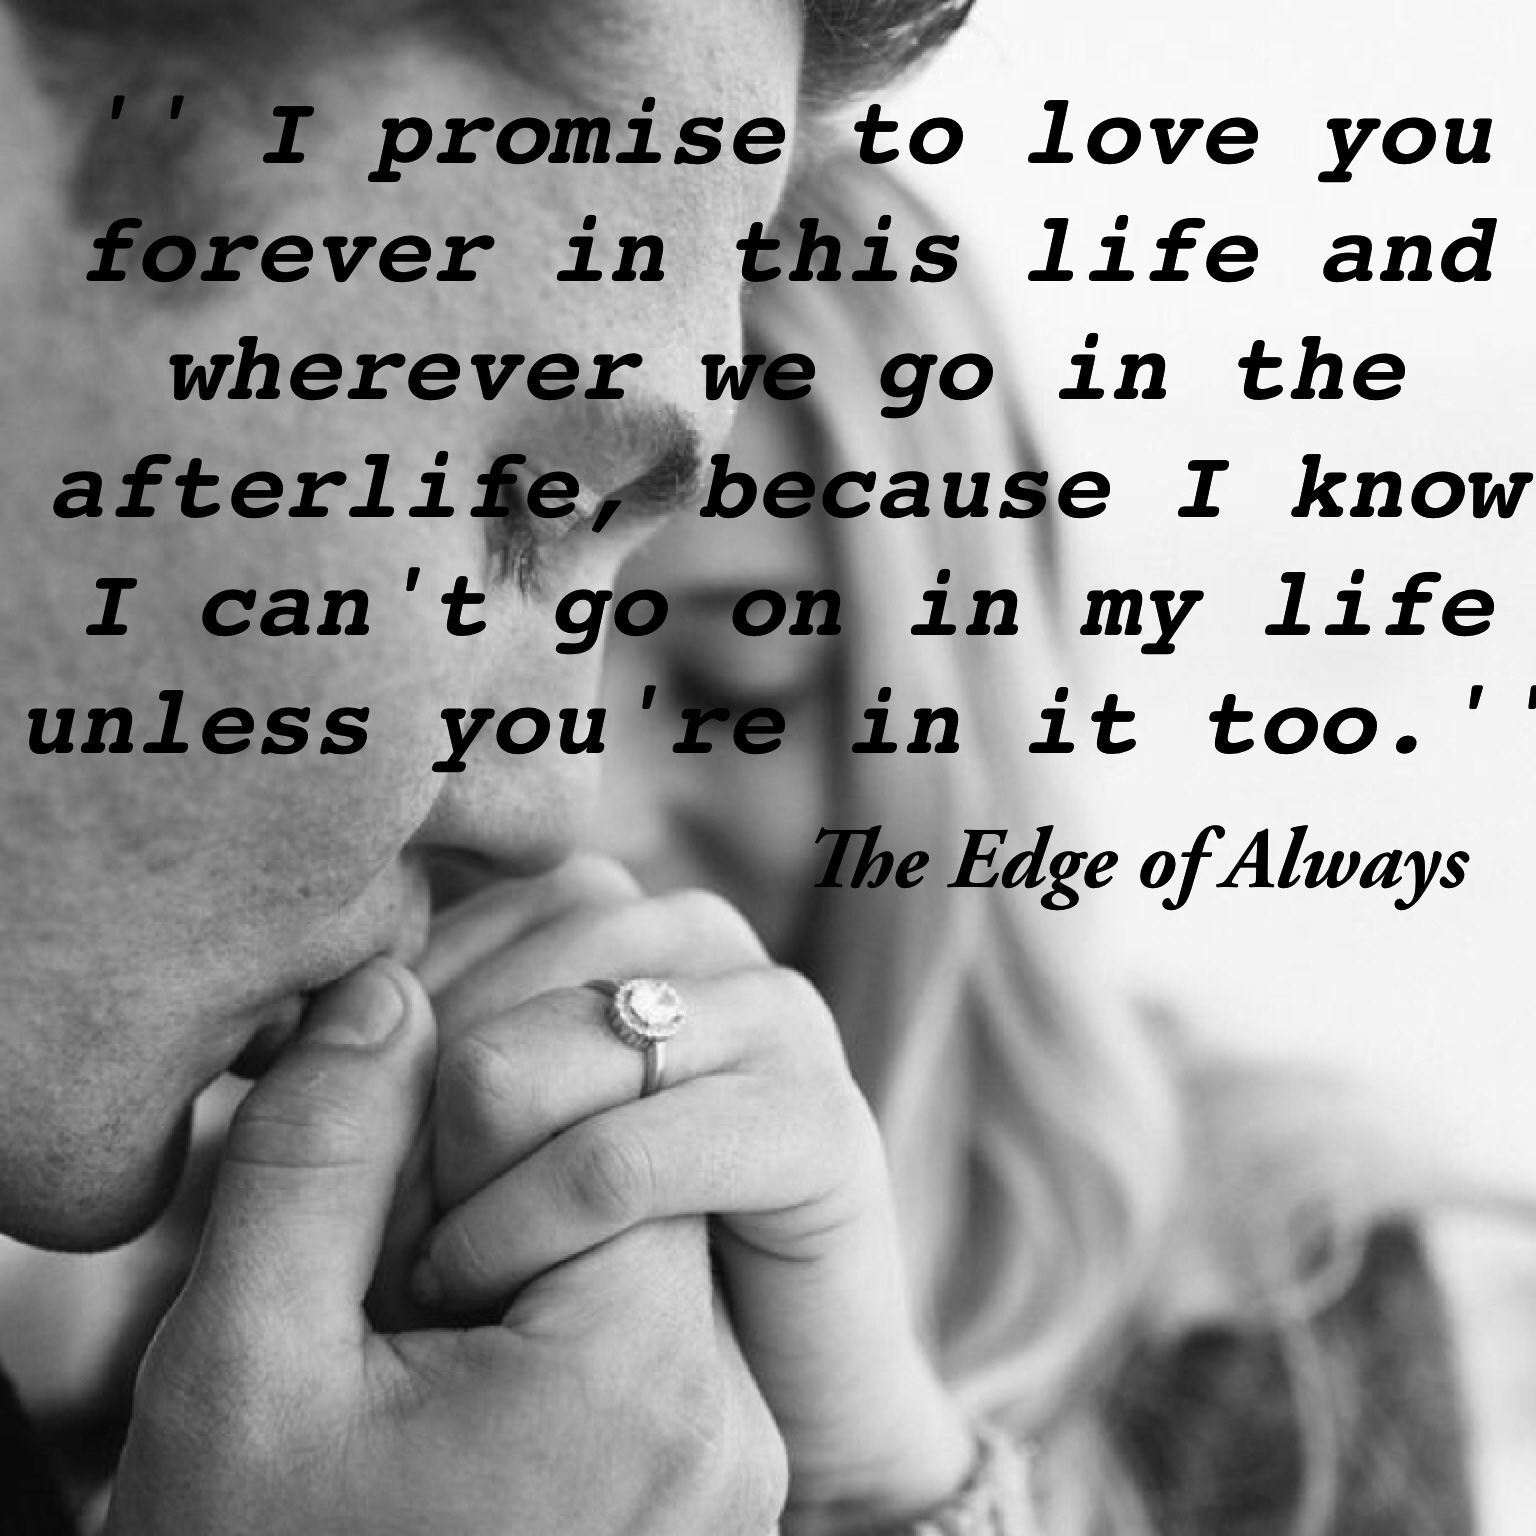 Love Quotes For My Boyfriend Romantic I Love You Wishes Images With Quotes For Your Amazing